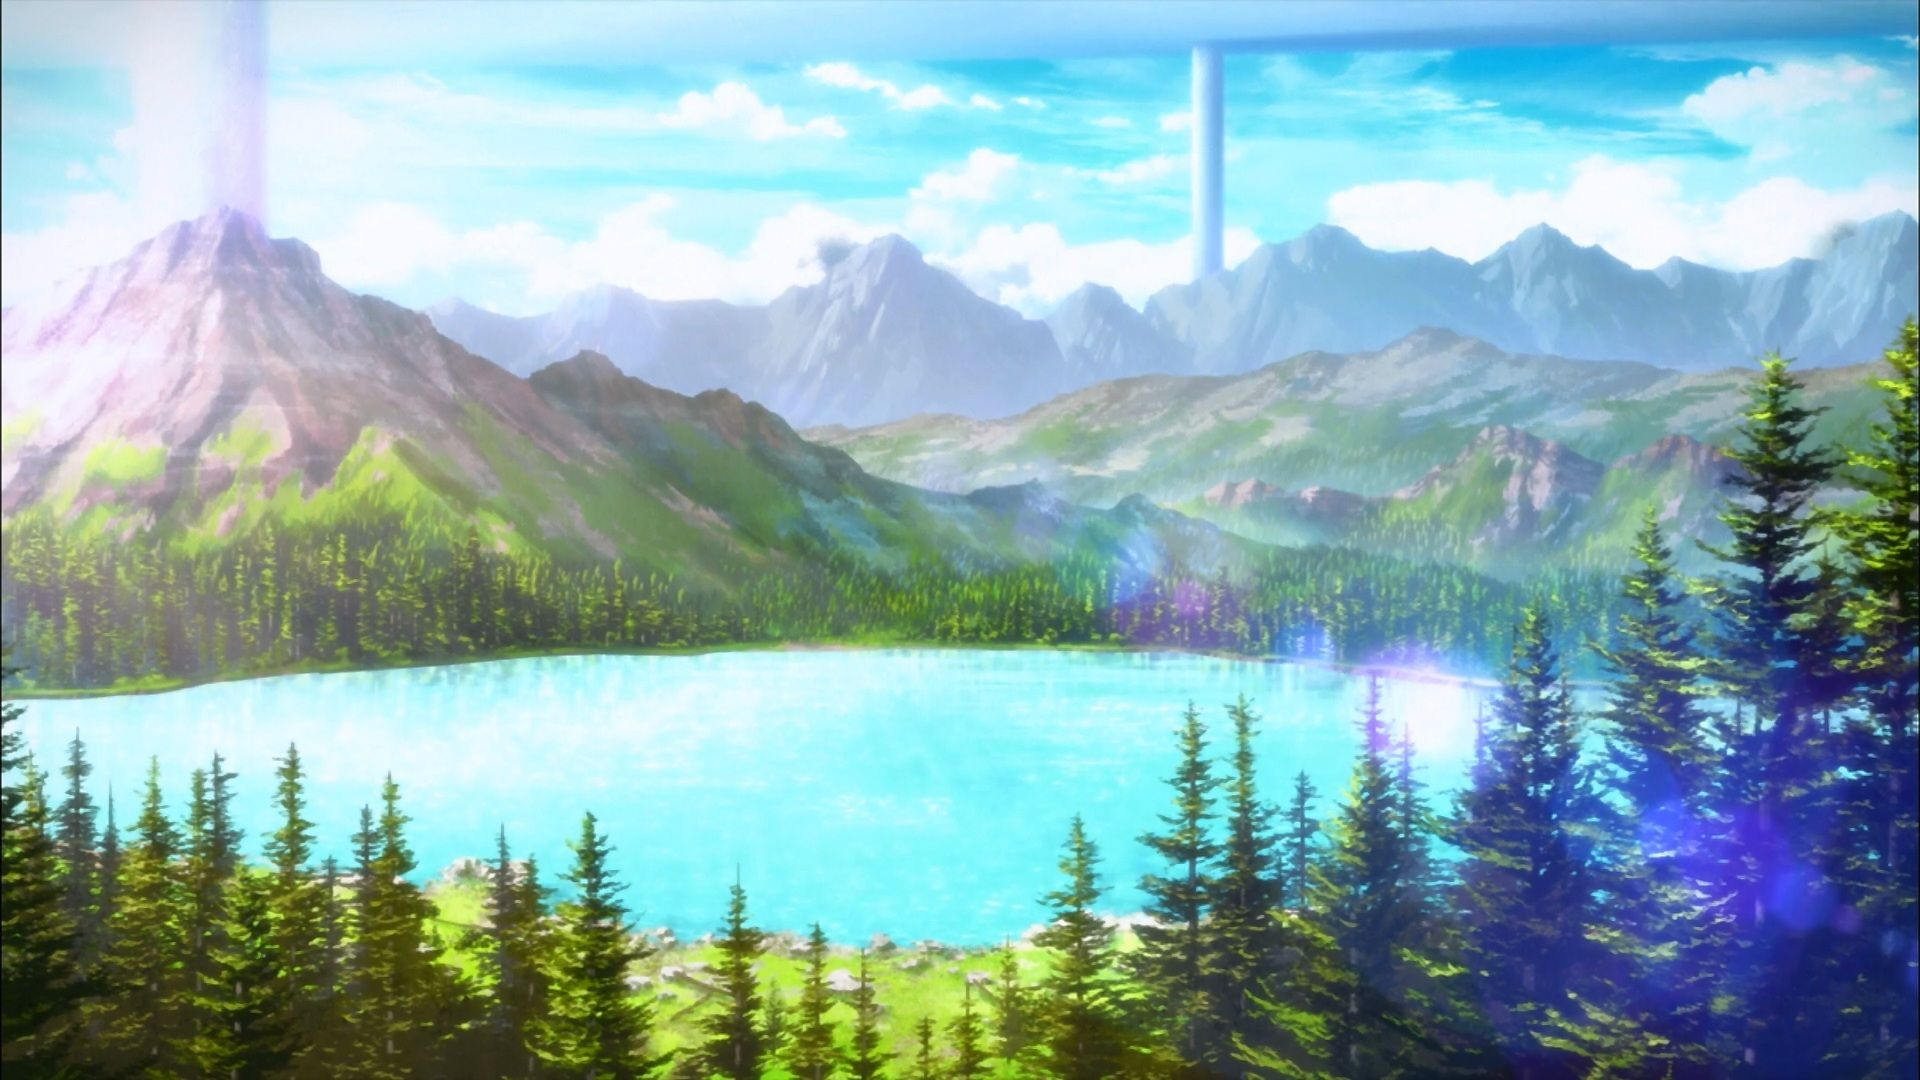 anime scenery hd wallpaper 1920x1080 id 25968 anime